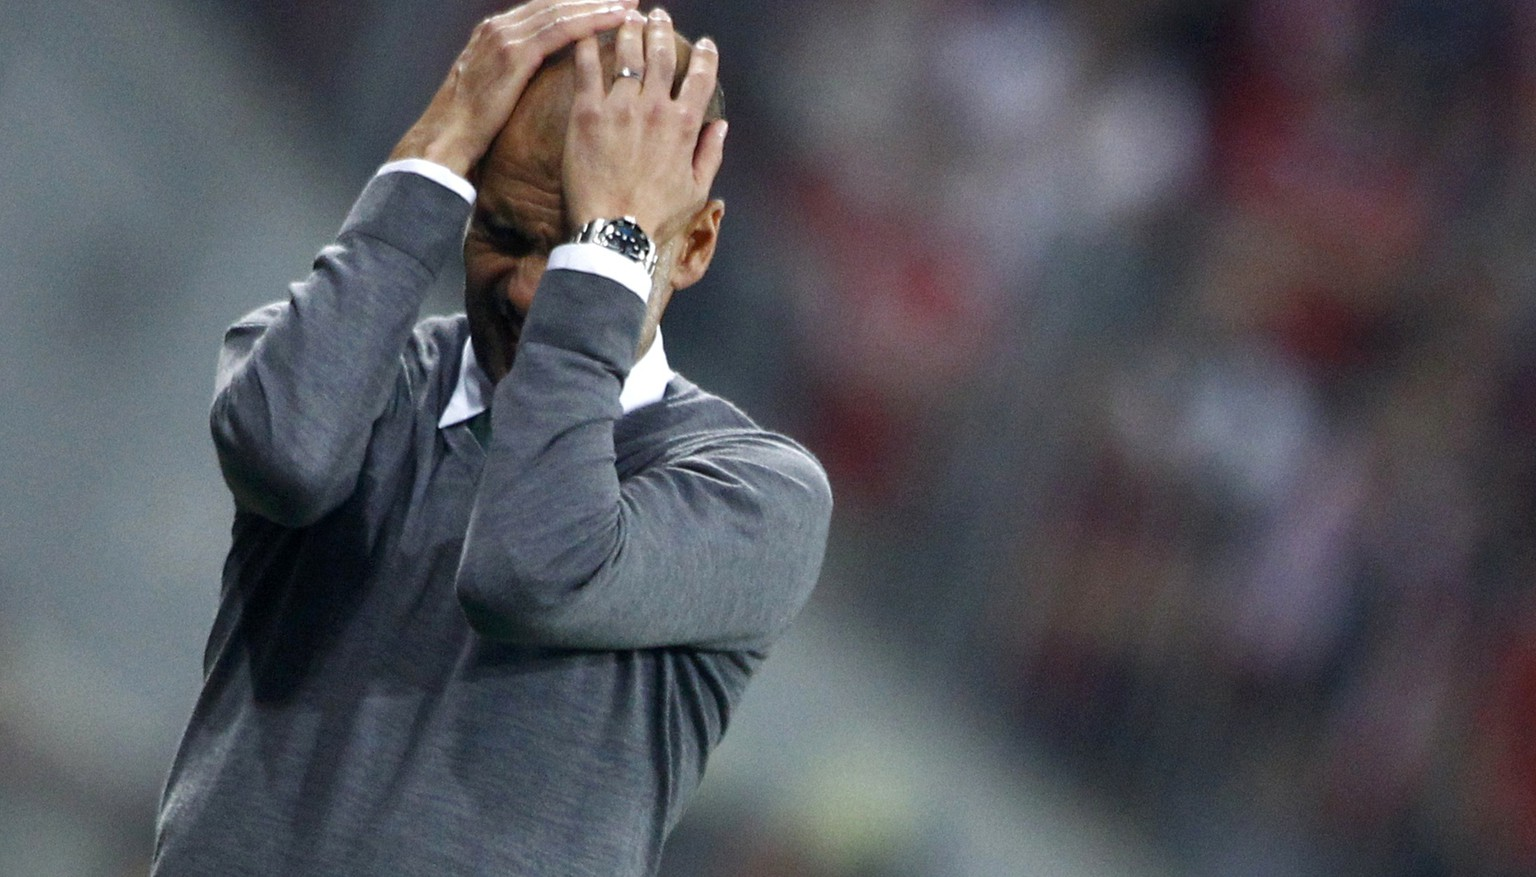 Bayern Munich's coach Josep Guardiola reacts during the Champions League group E soccer match against Manchester City, in Munich September 17, 2014.                                REUTERS/Michaela Rehle (GERMANY  - Tags: SPORT SOCCER)